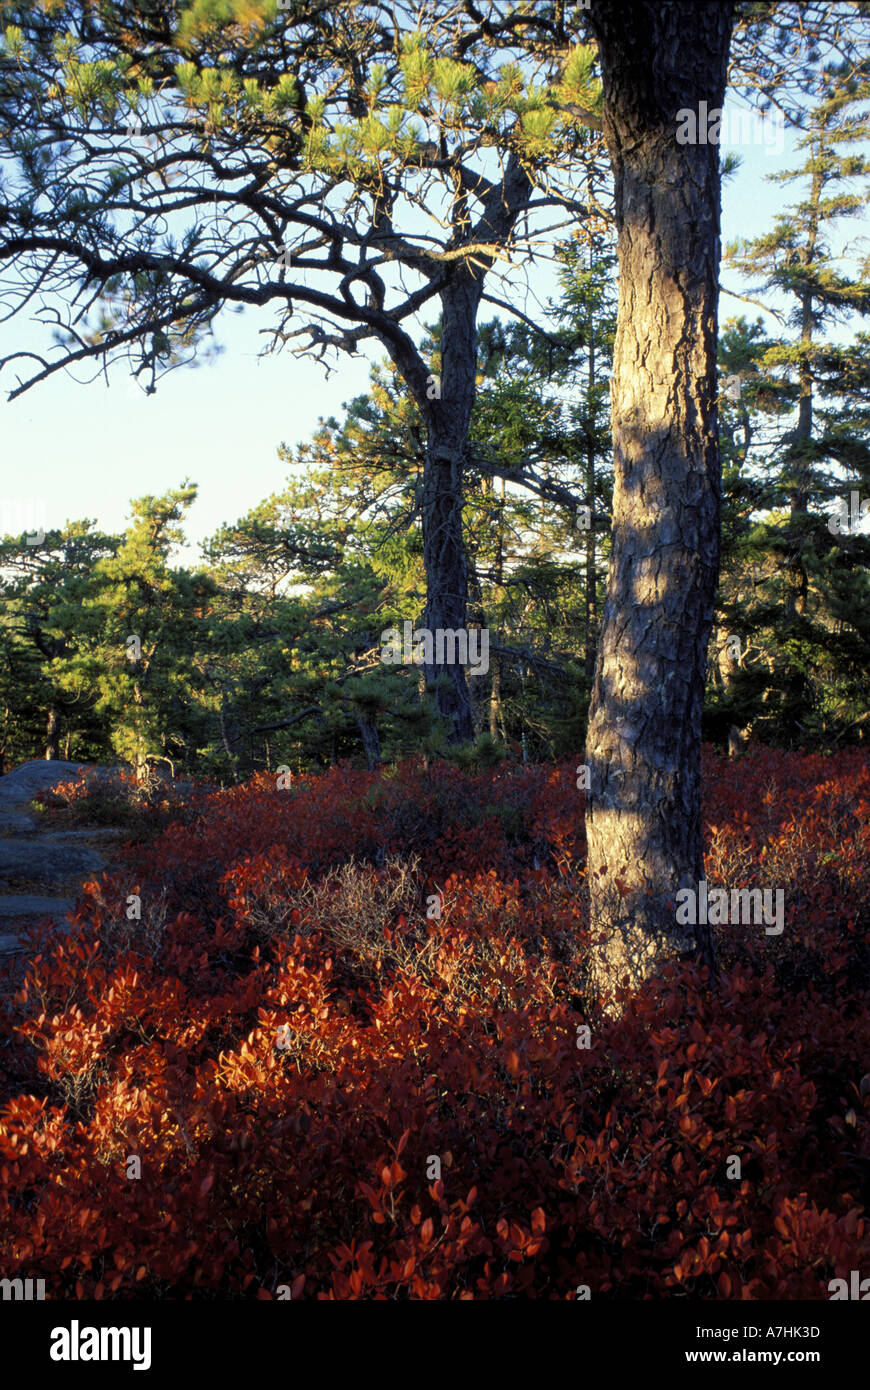 North America, US, ME, Lowbush blueberry, Vaccinium vacillans. Pitch pine, pinus rigida, on St. Sauveur Mtn in fall. - Stock Image